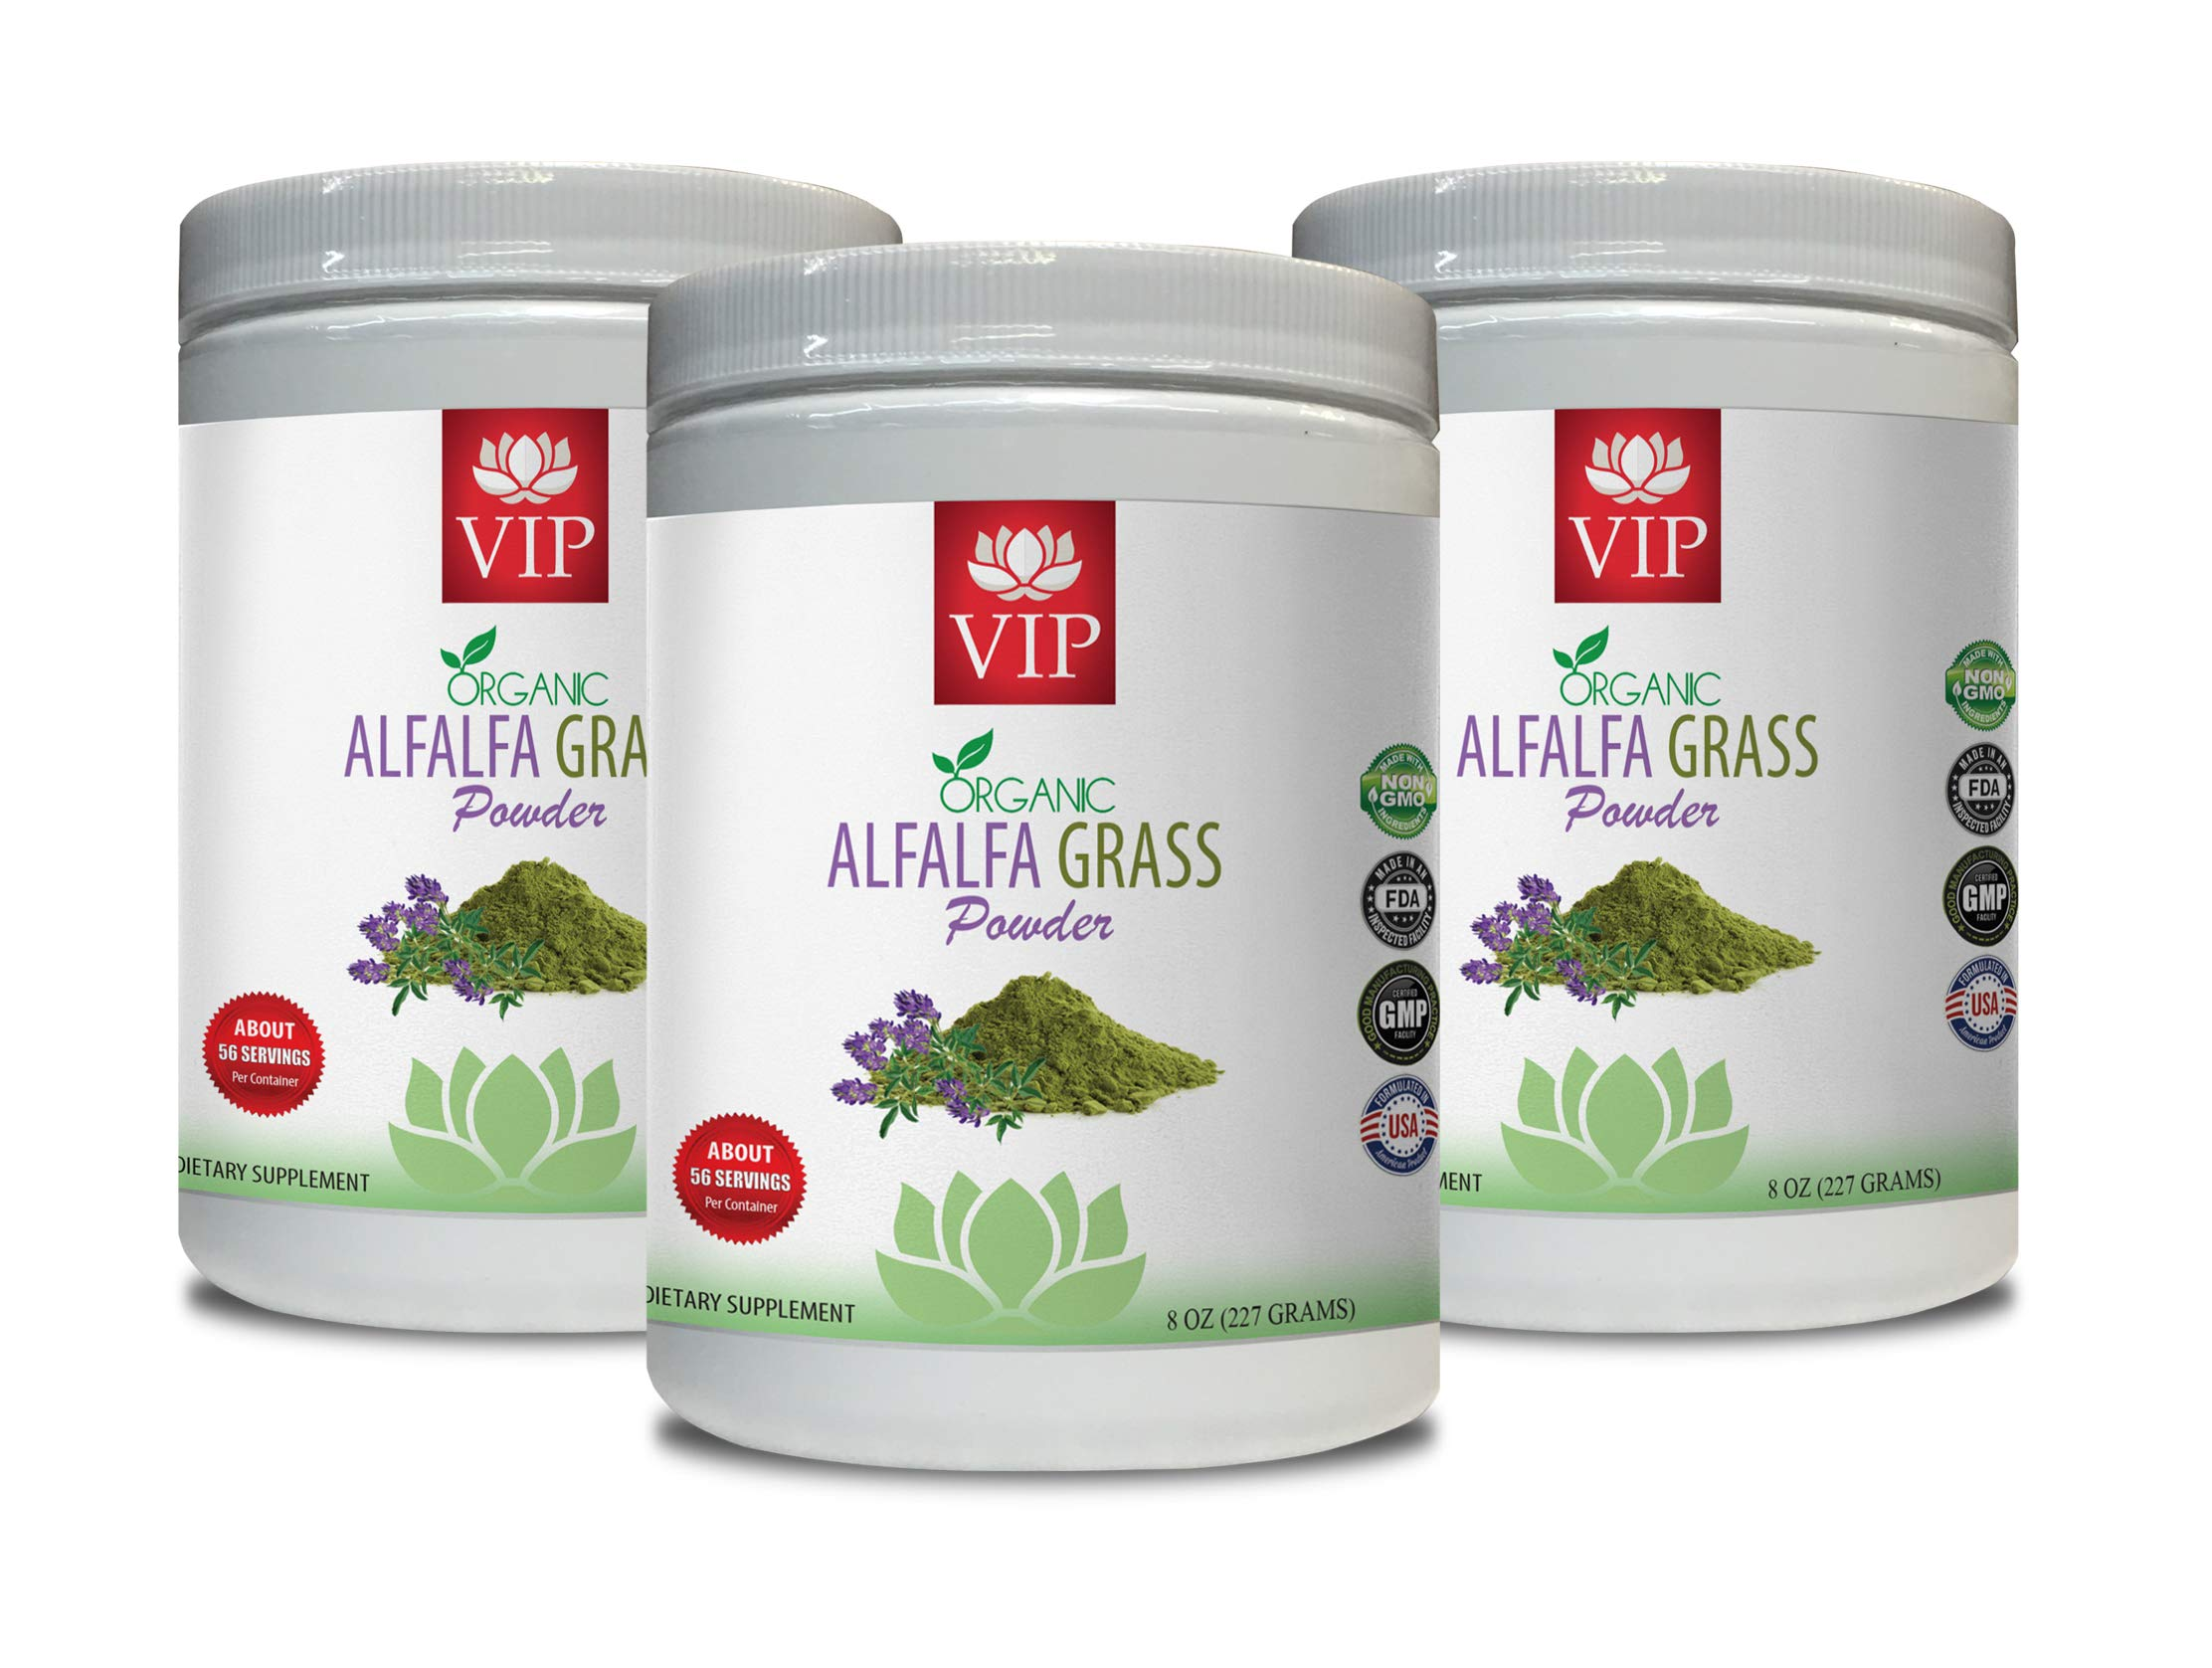 antioxidant Extreme Supplement - Alfalfa Organic Grass Powder - Organic Non GMO Alfalfa - 3 Cans 24 OZ (168 Servings)